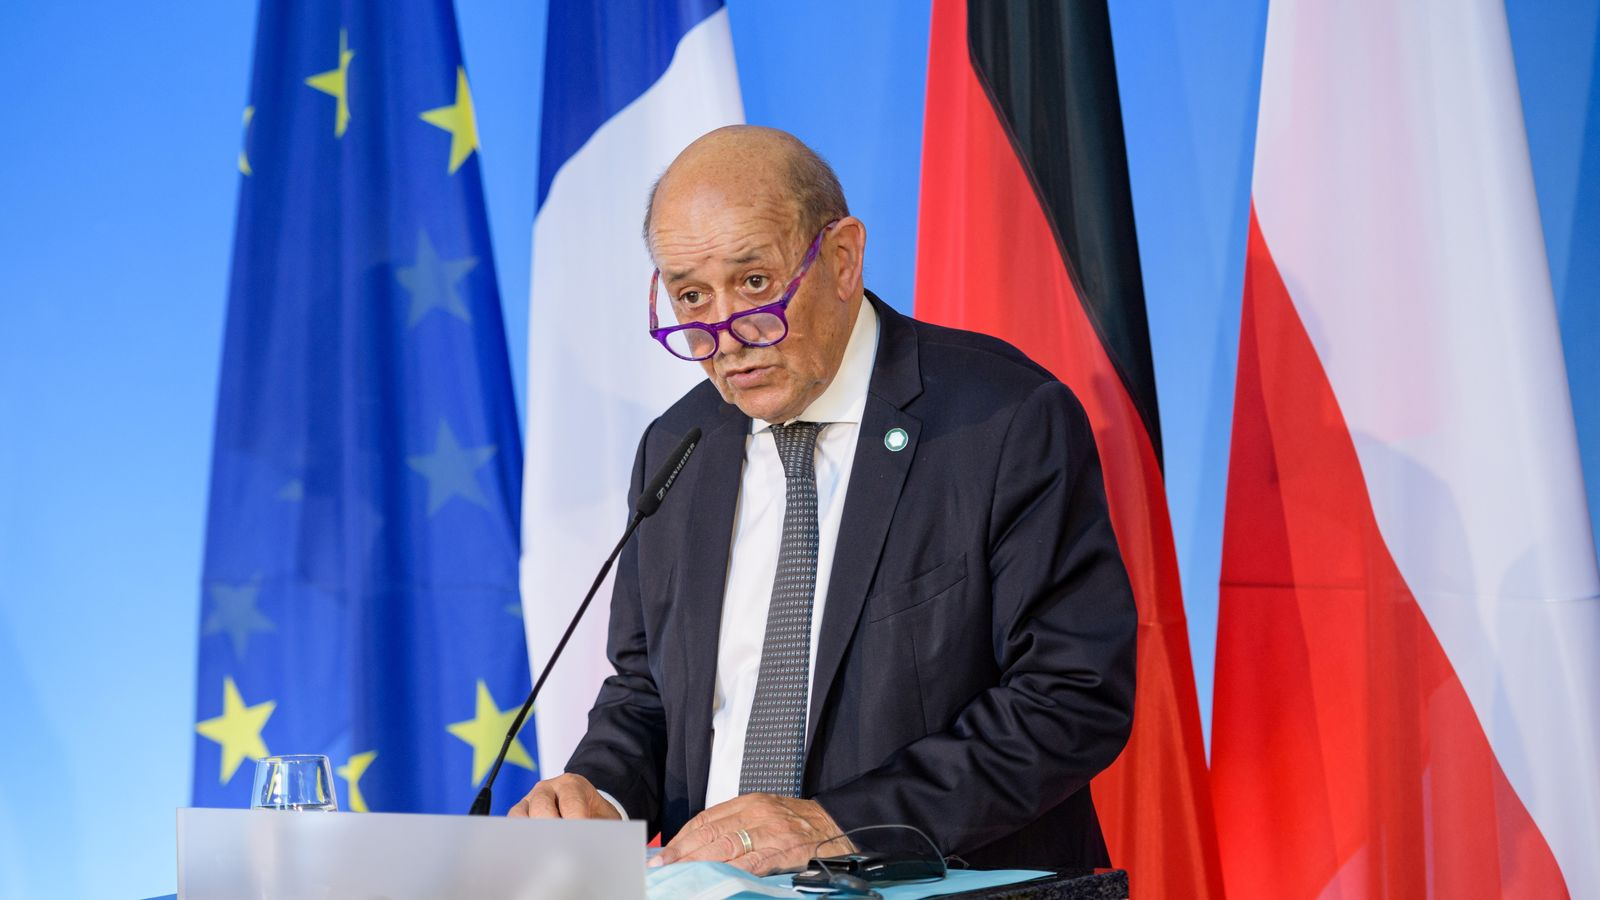 France: AUKUS submarine deal has caused one of the gravest rifts among Western allies in living memory